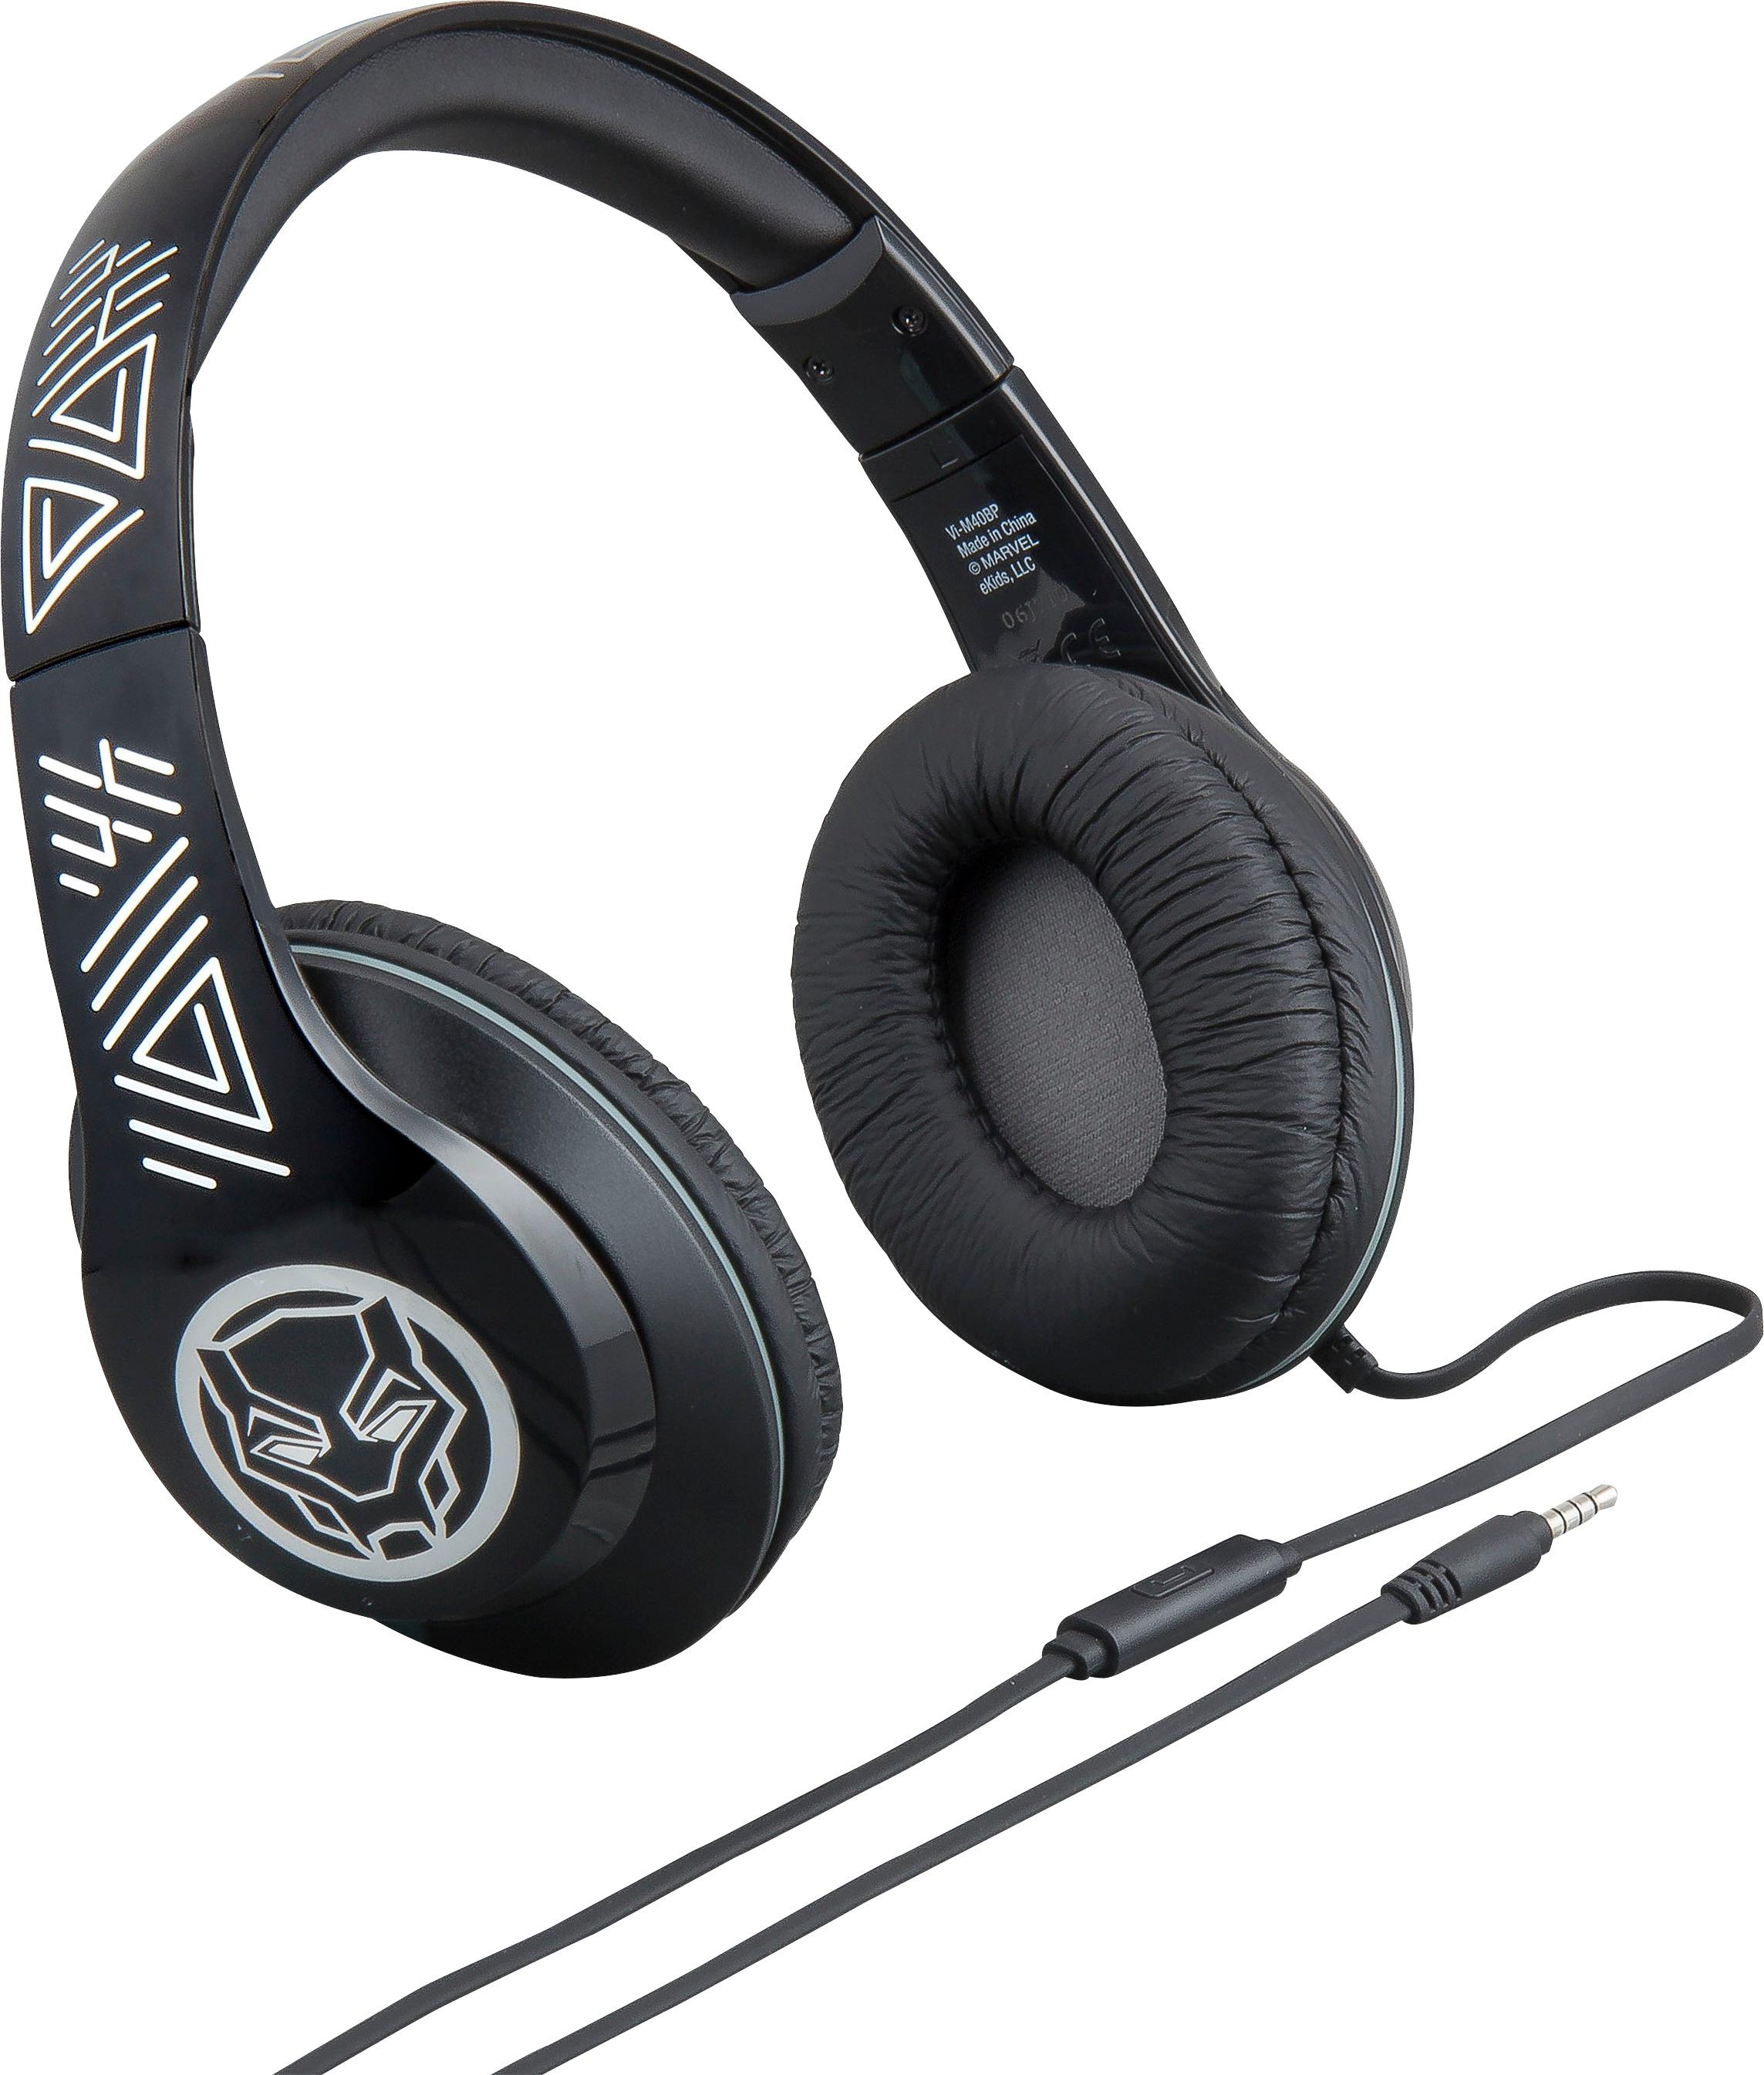 Marvel Black Panther Over-the-Ear Headphones Black VI-M40BP.FXV8M ...